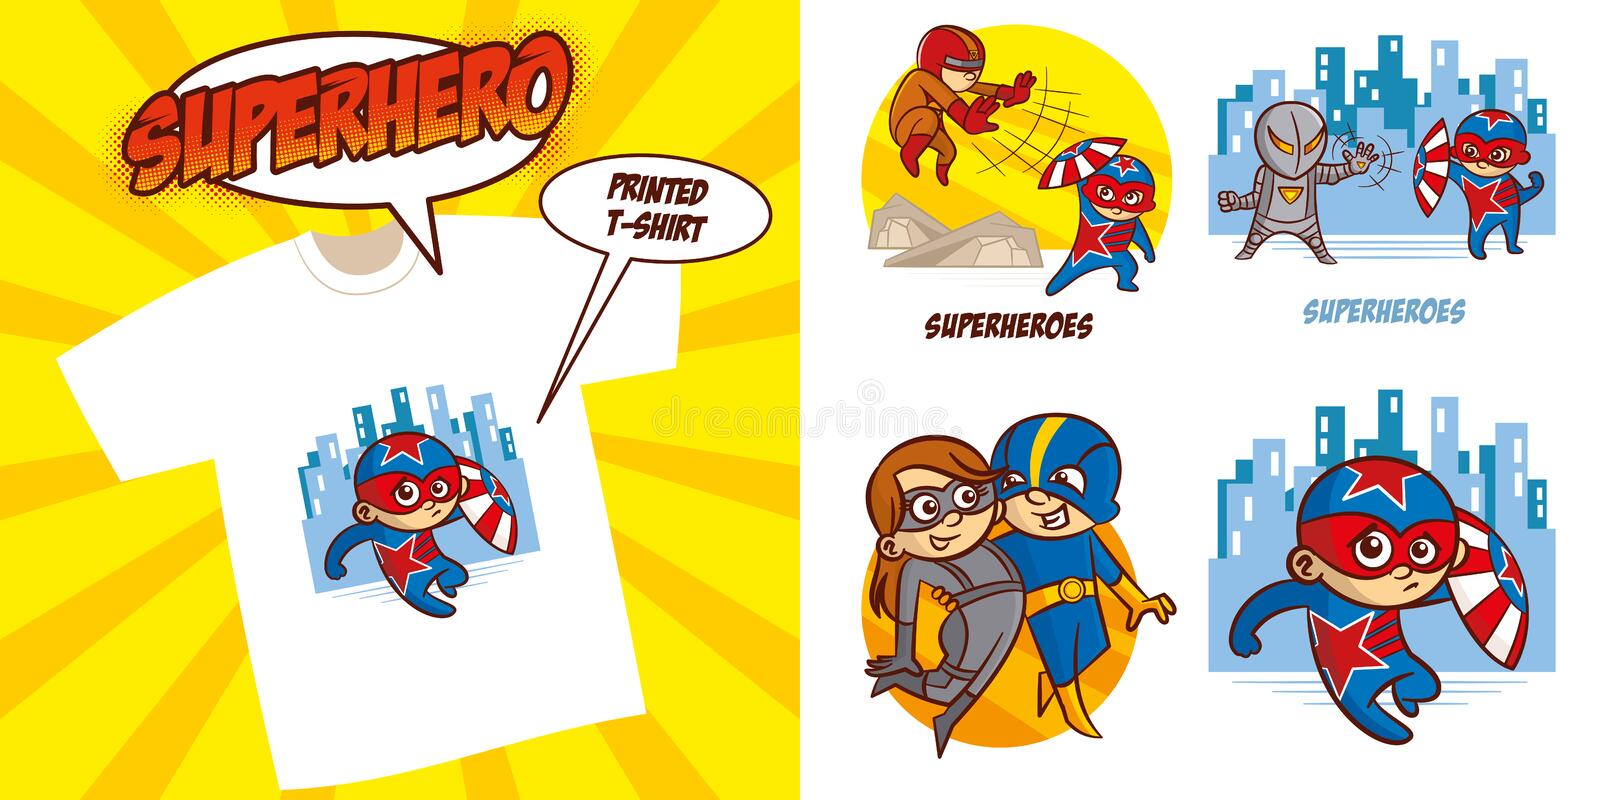 Superhero character Superheroes Set Vector illustration design. Superheroes Set Superhero character Vector illustration design for printed t-shirt stock illustration